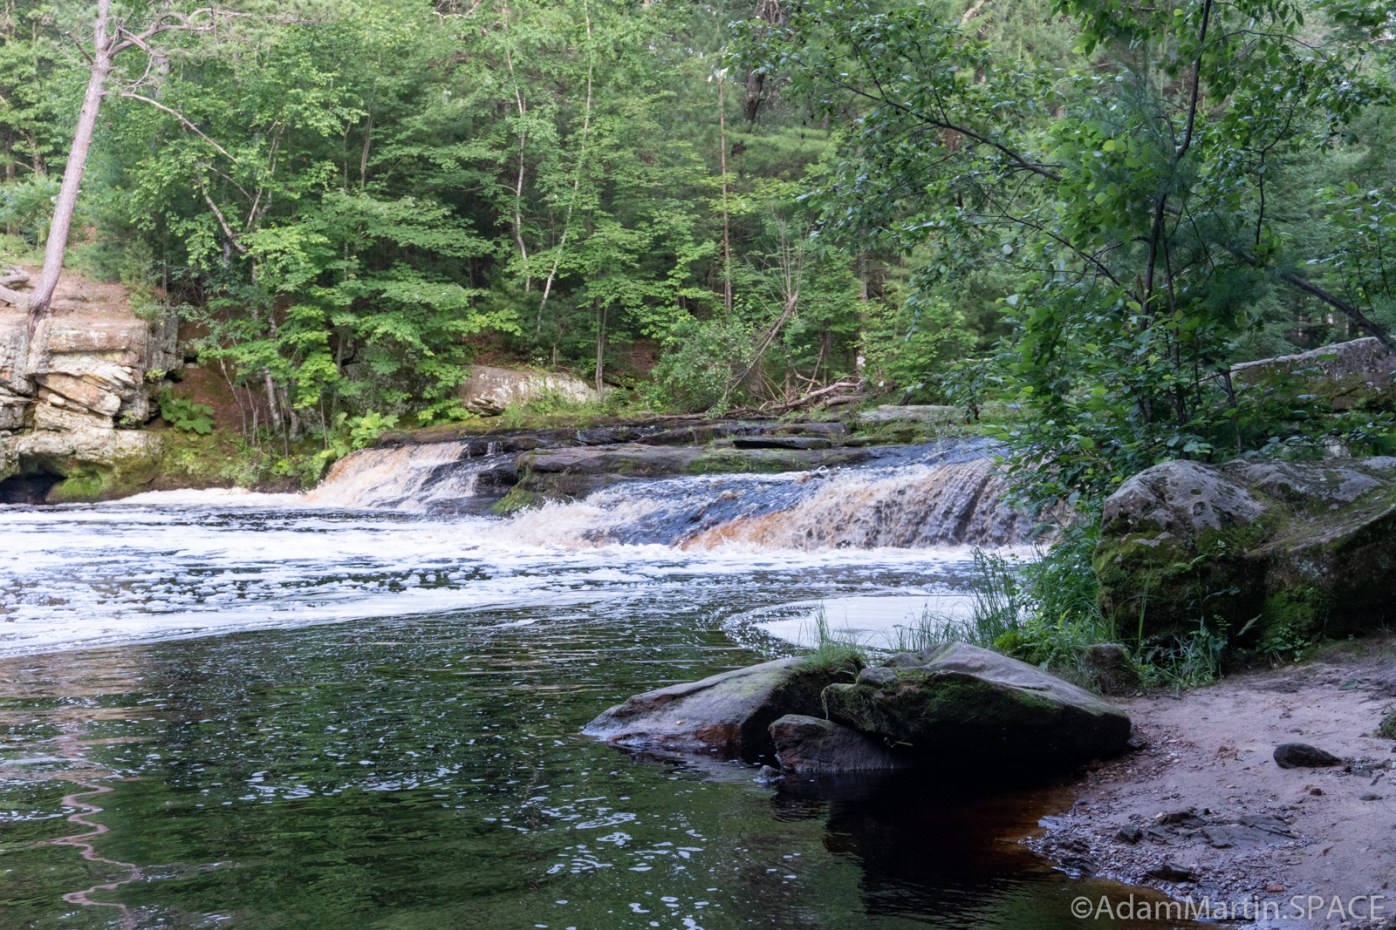 Swimming Falls - View from downstream